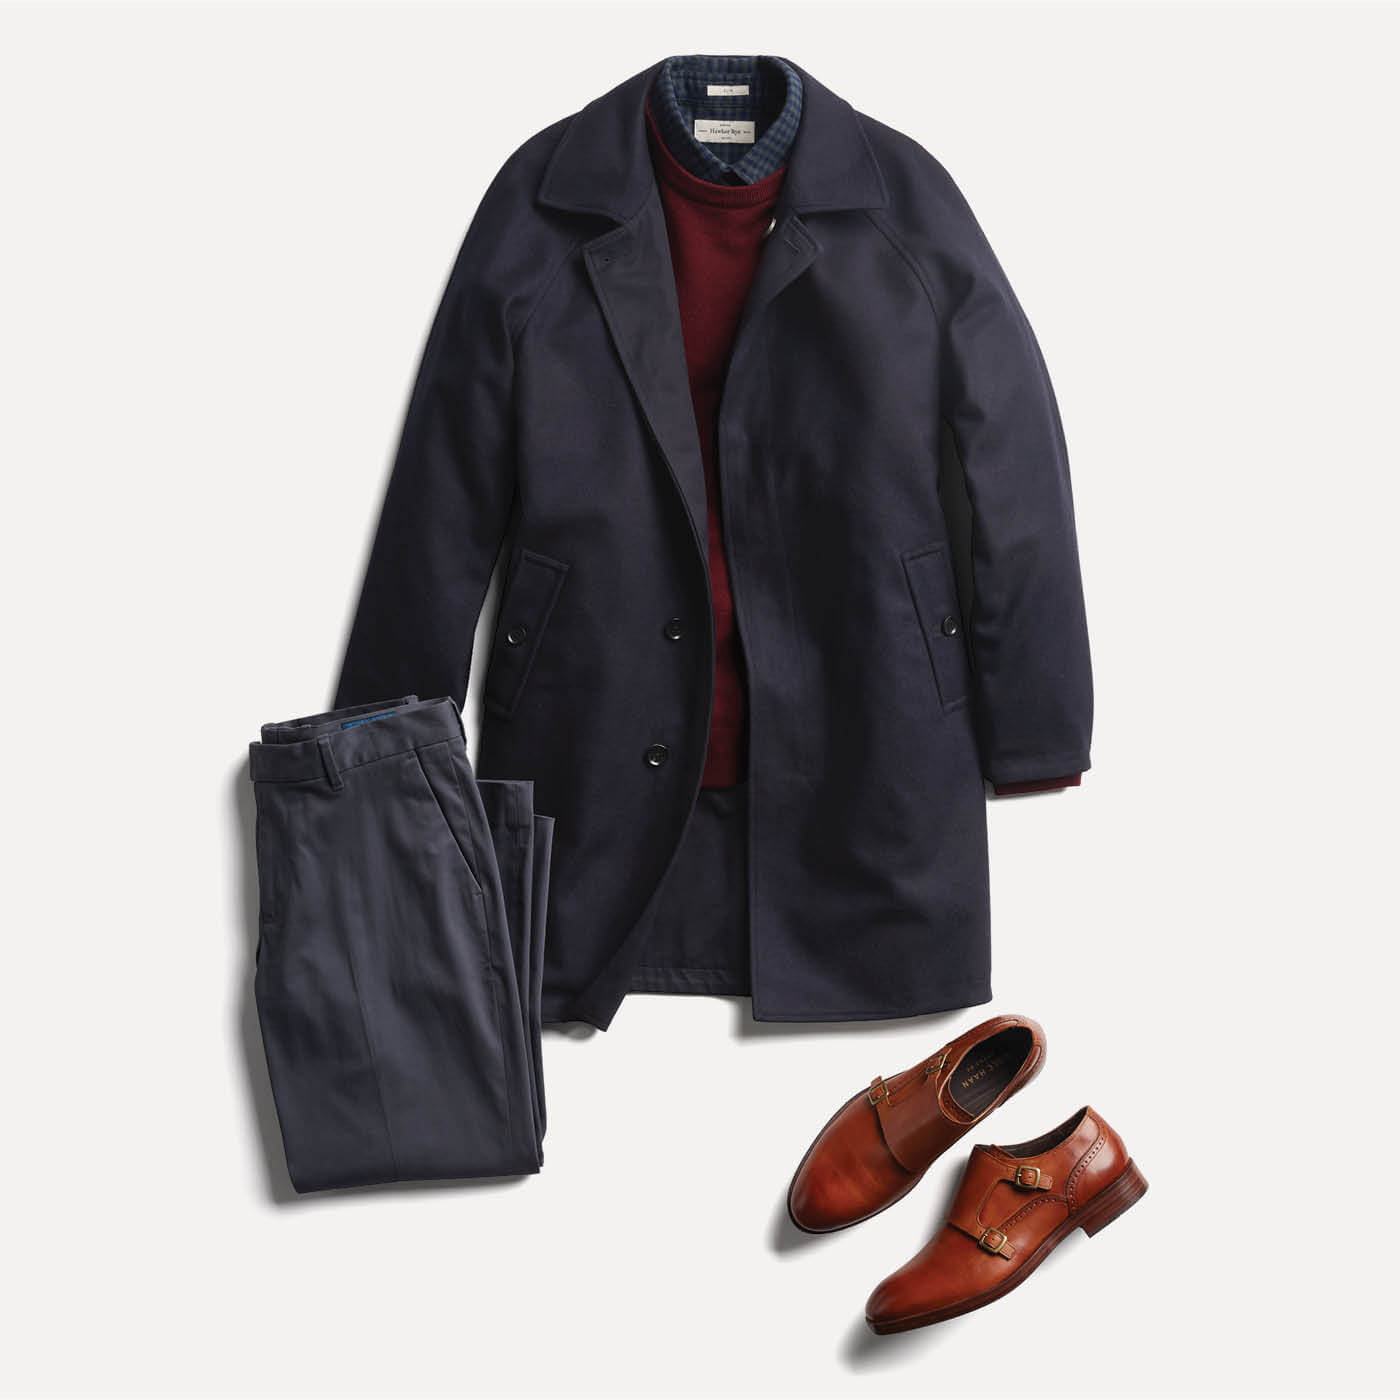 monkstraps with coat